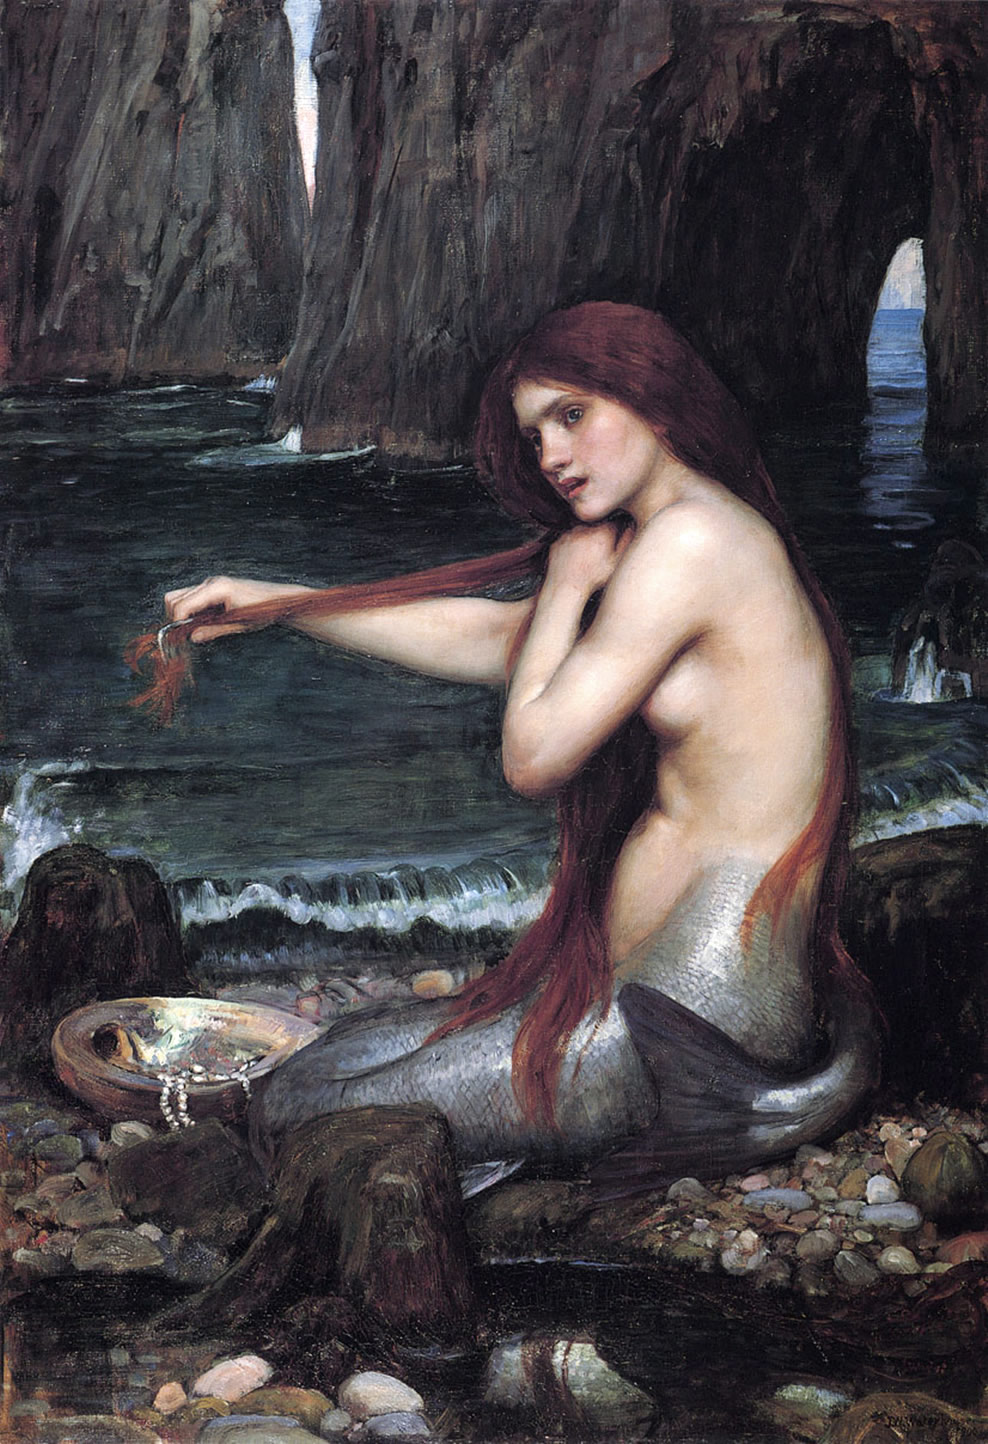 http://upload.wikimedia.org/wikipedia/commons/2/2a/Waterhouse_a_mermaid.jpg